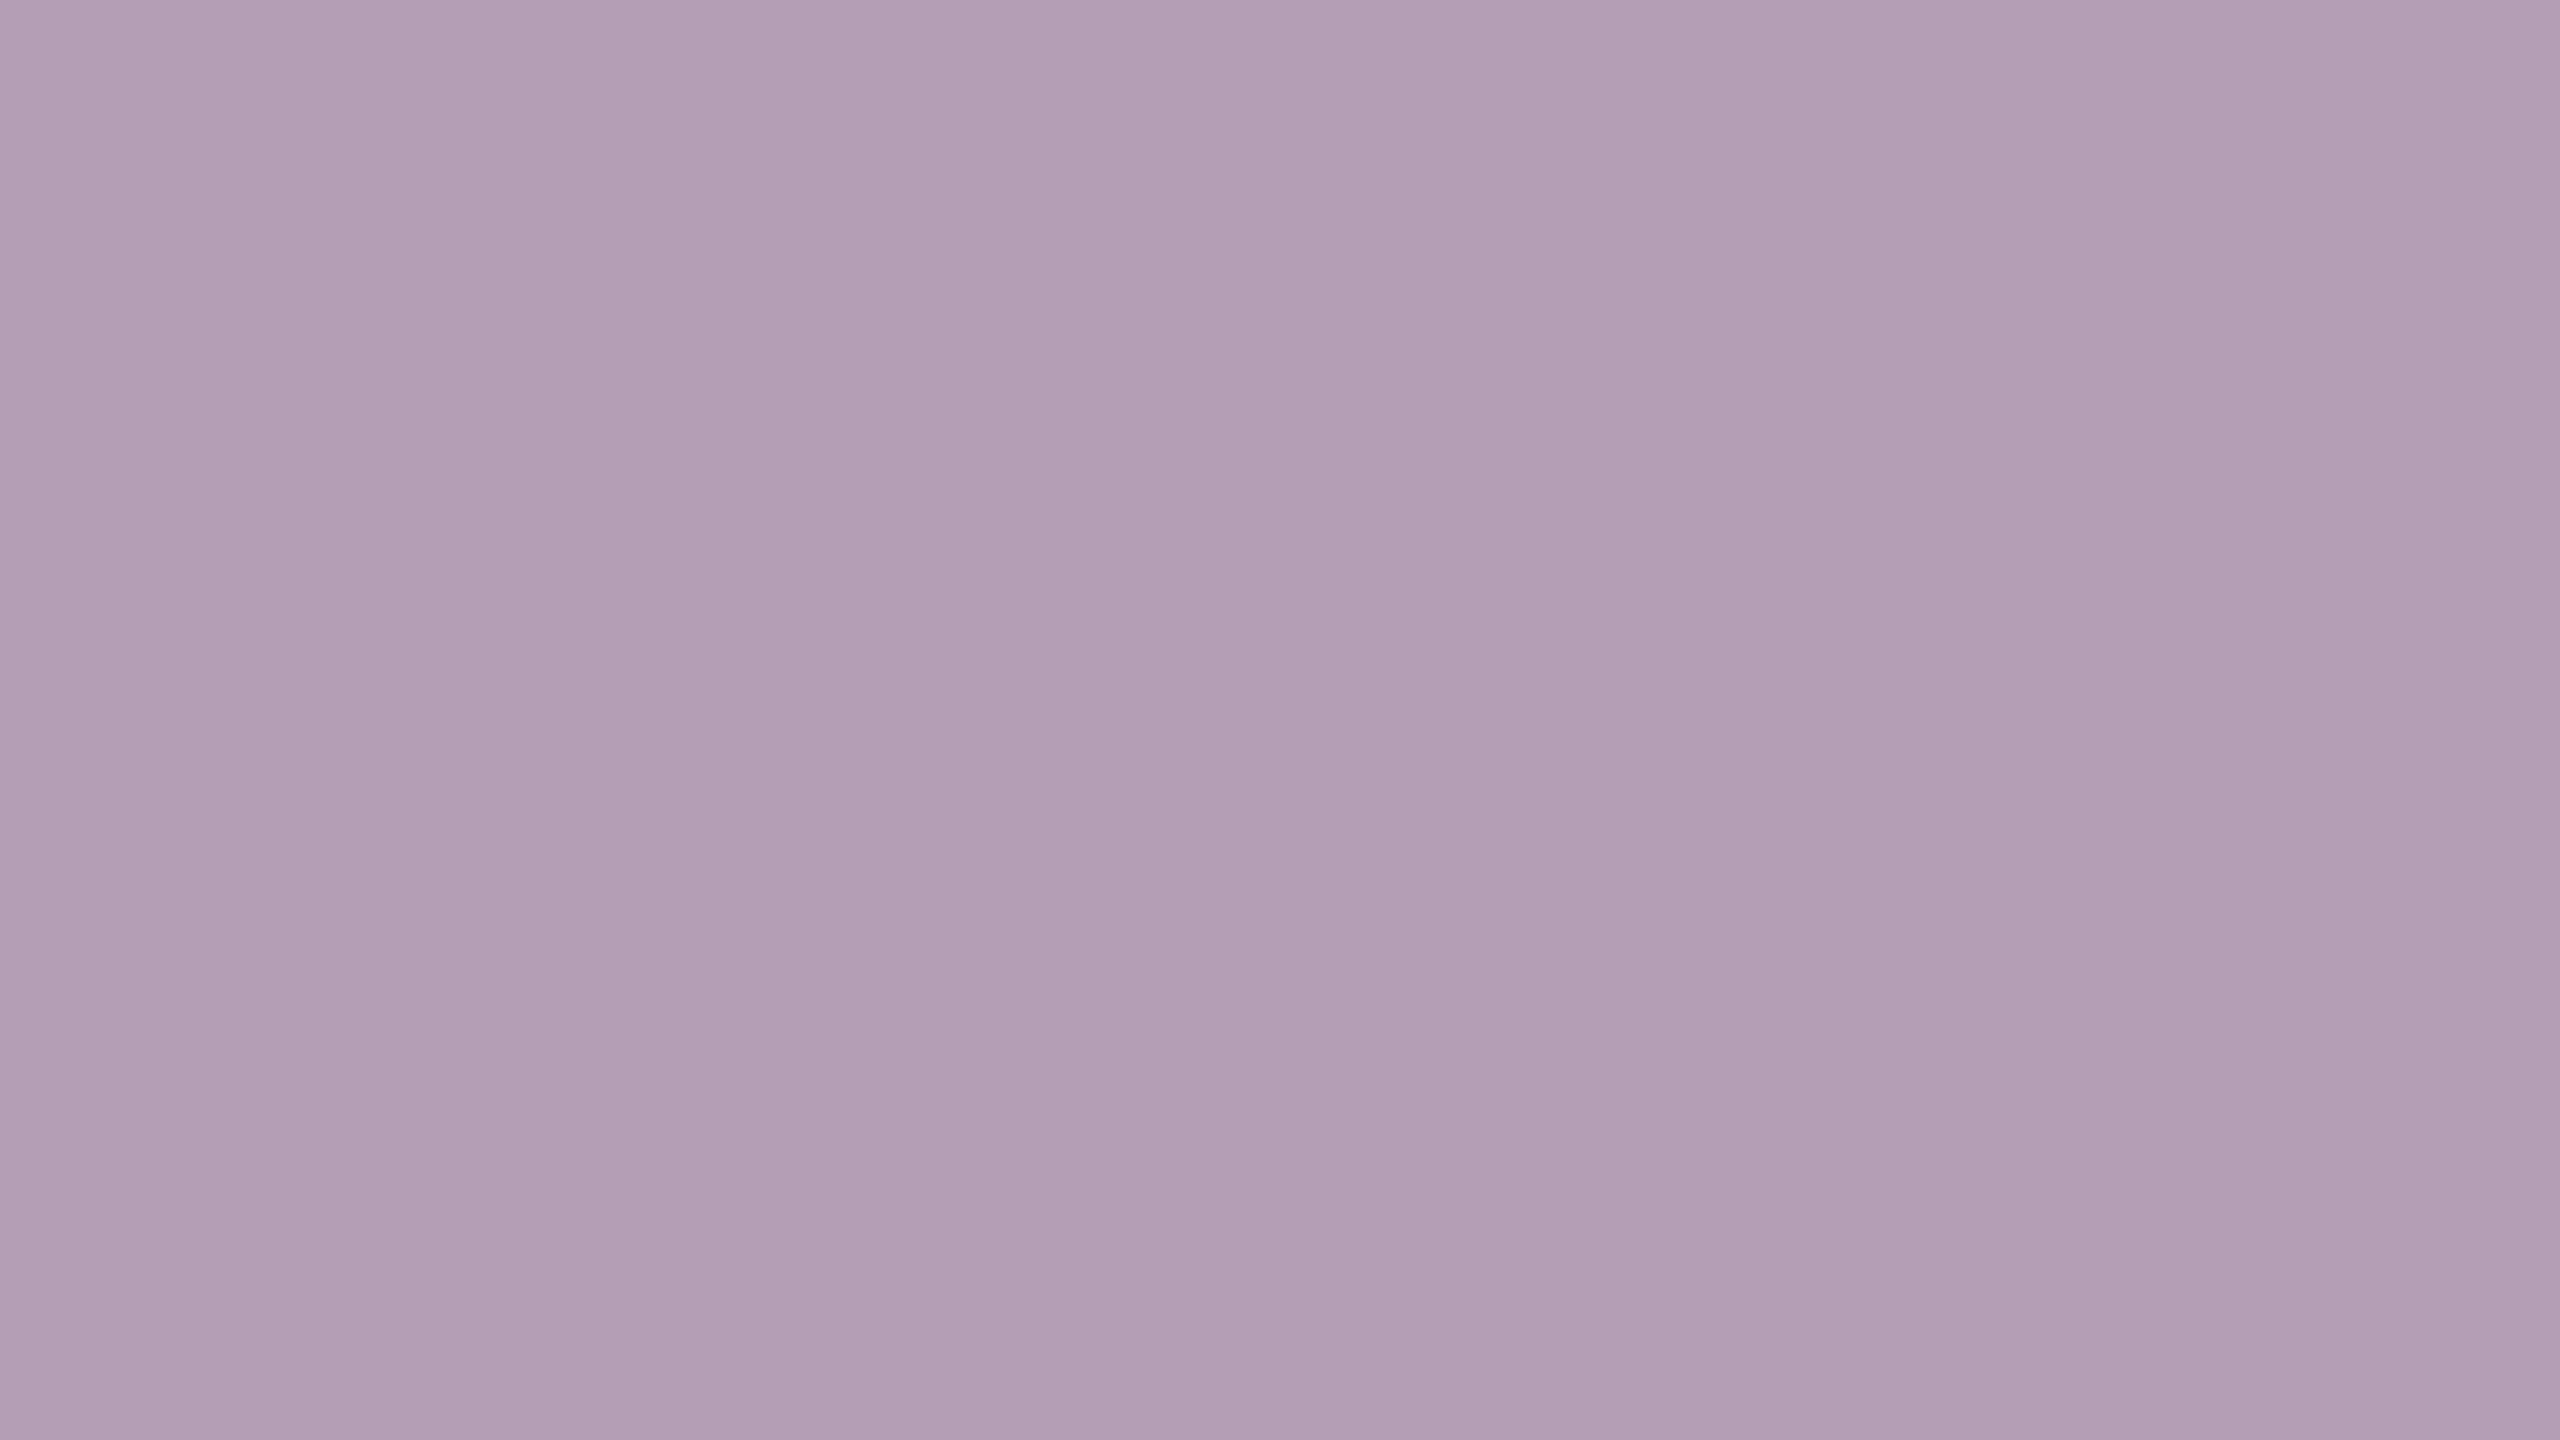 2560x1440 Pastel Purple Solid Color Background